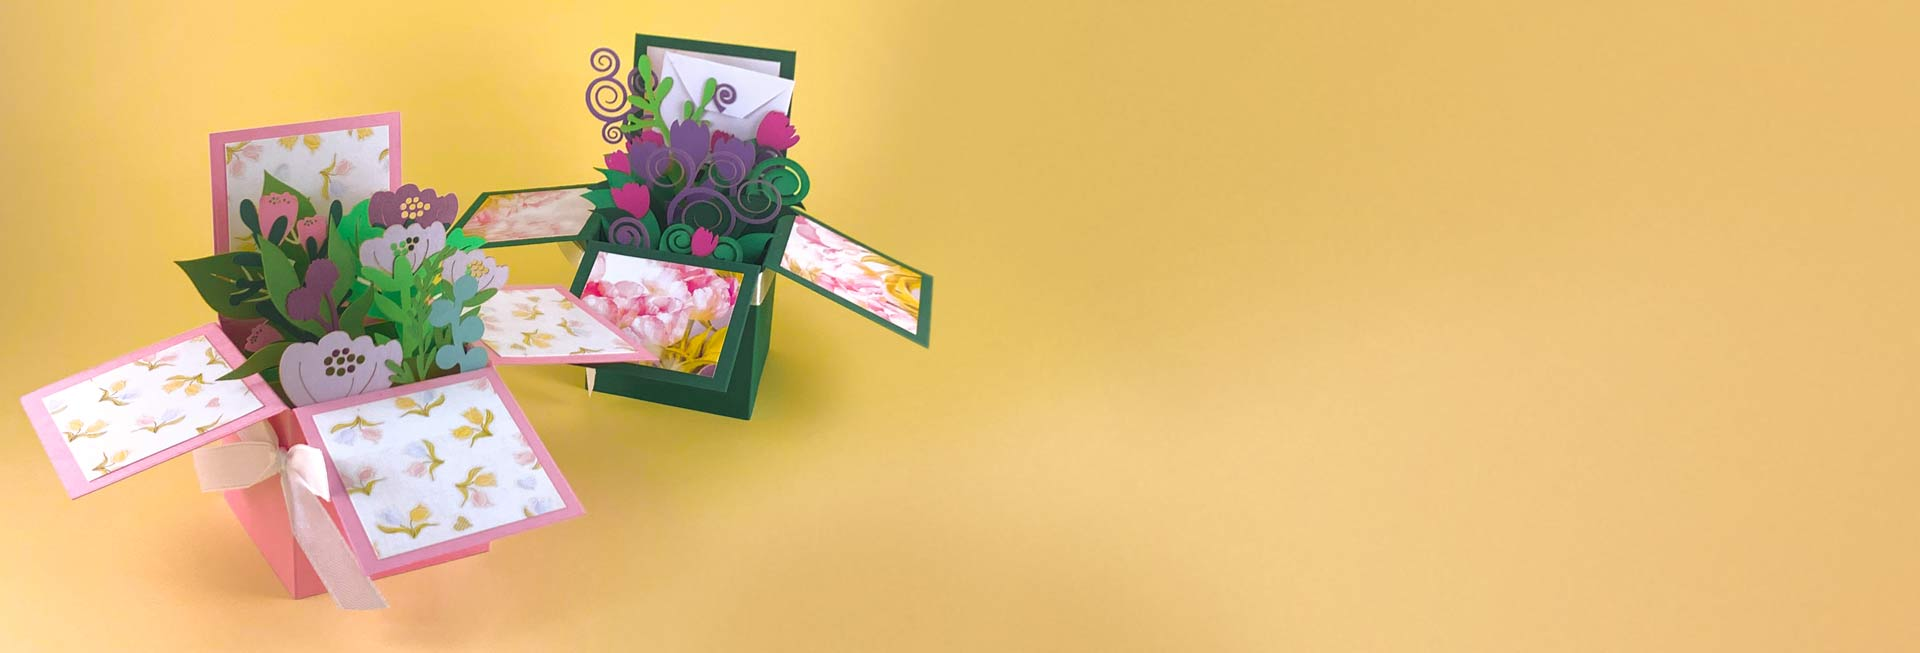 Flowers Cards and Boxes